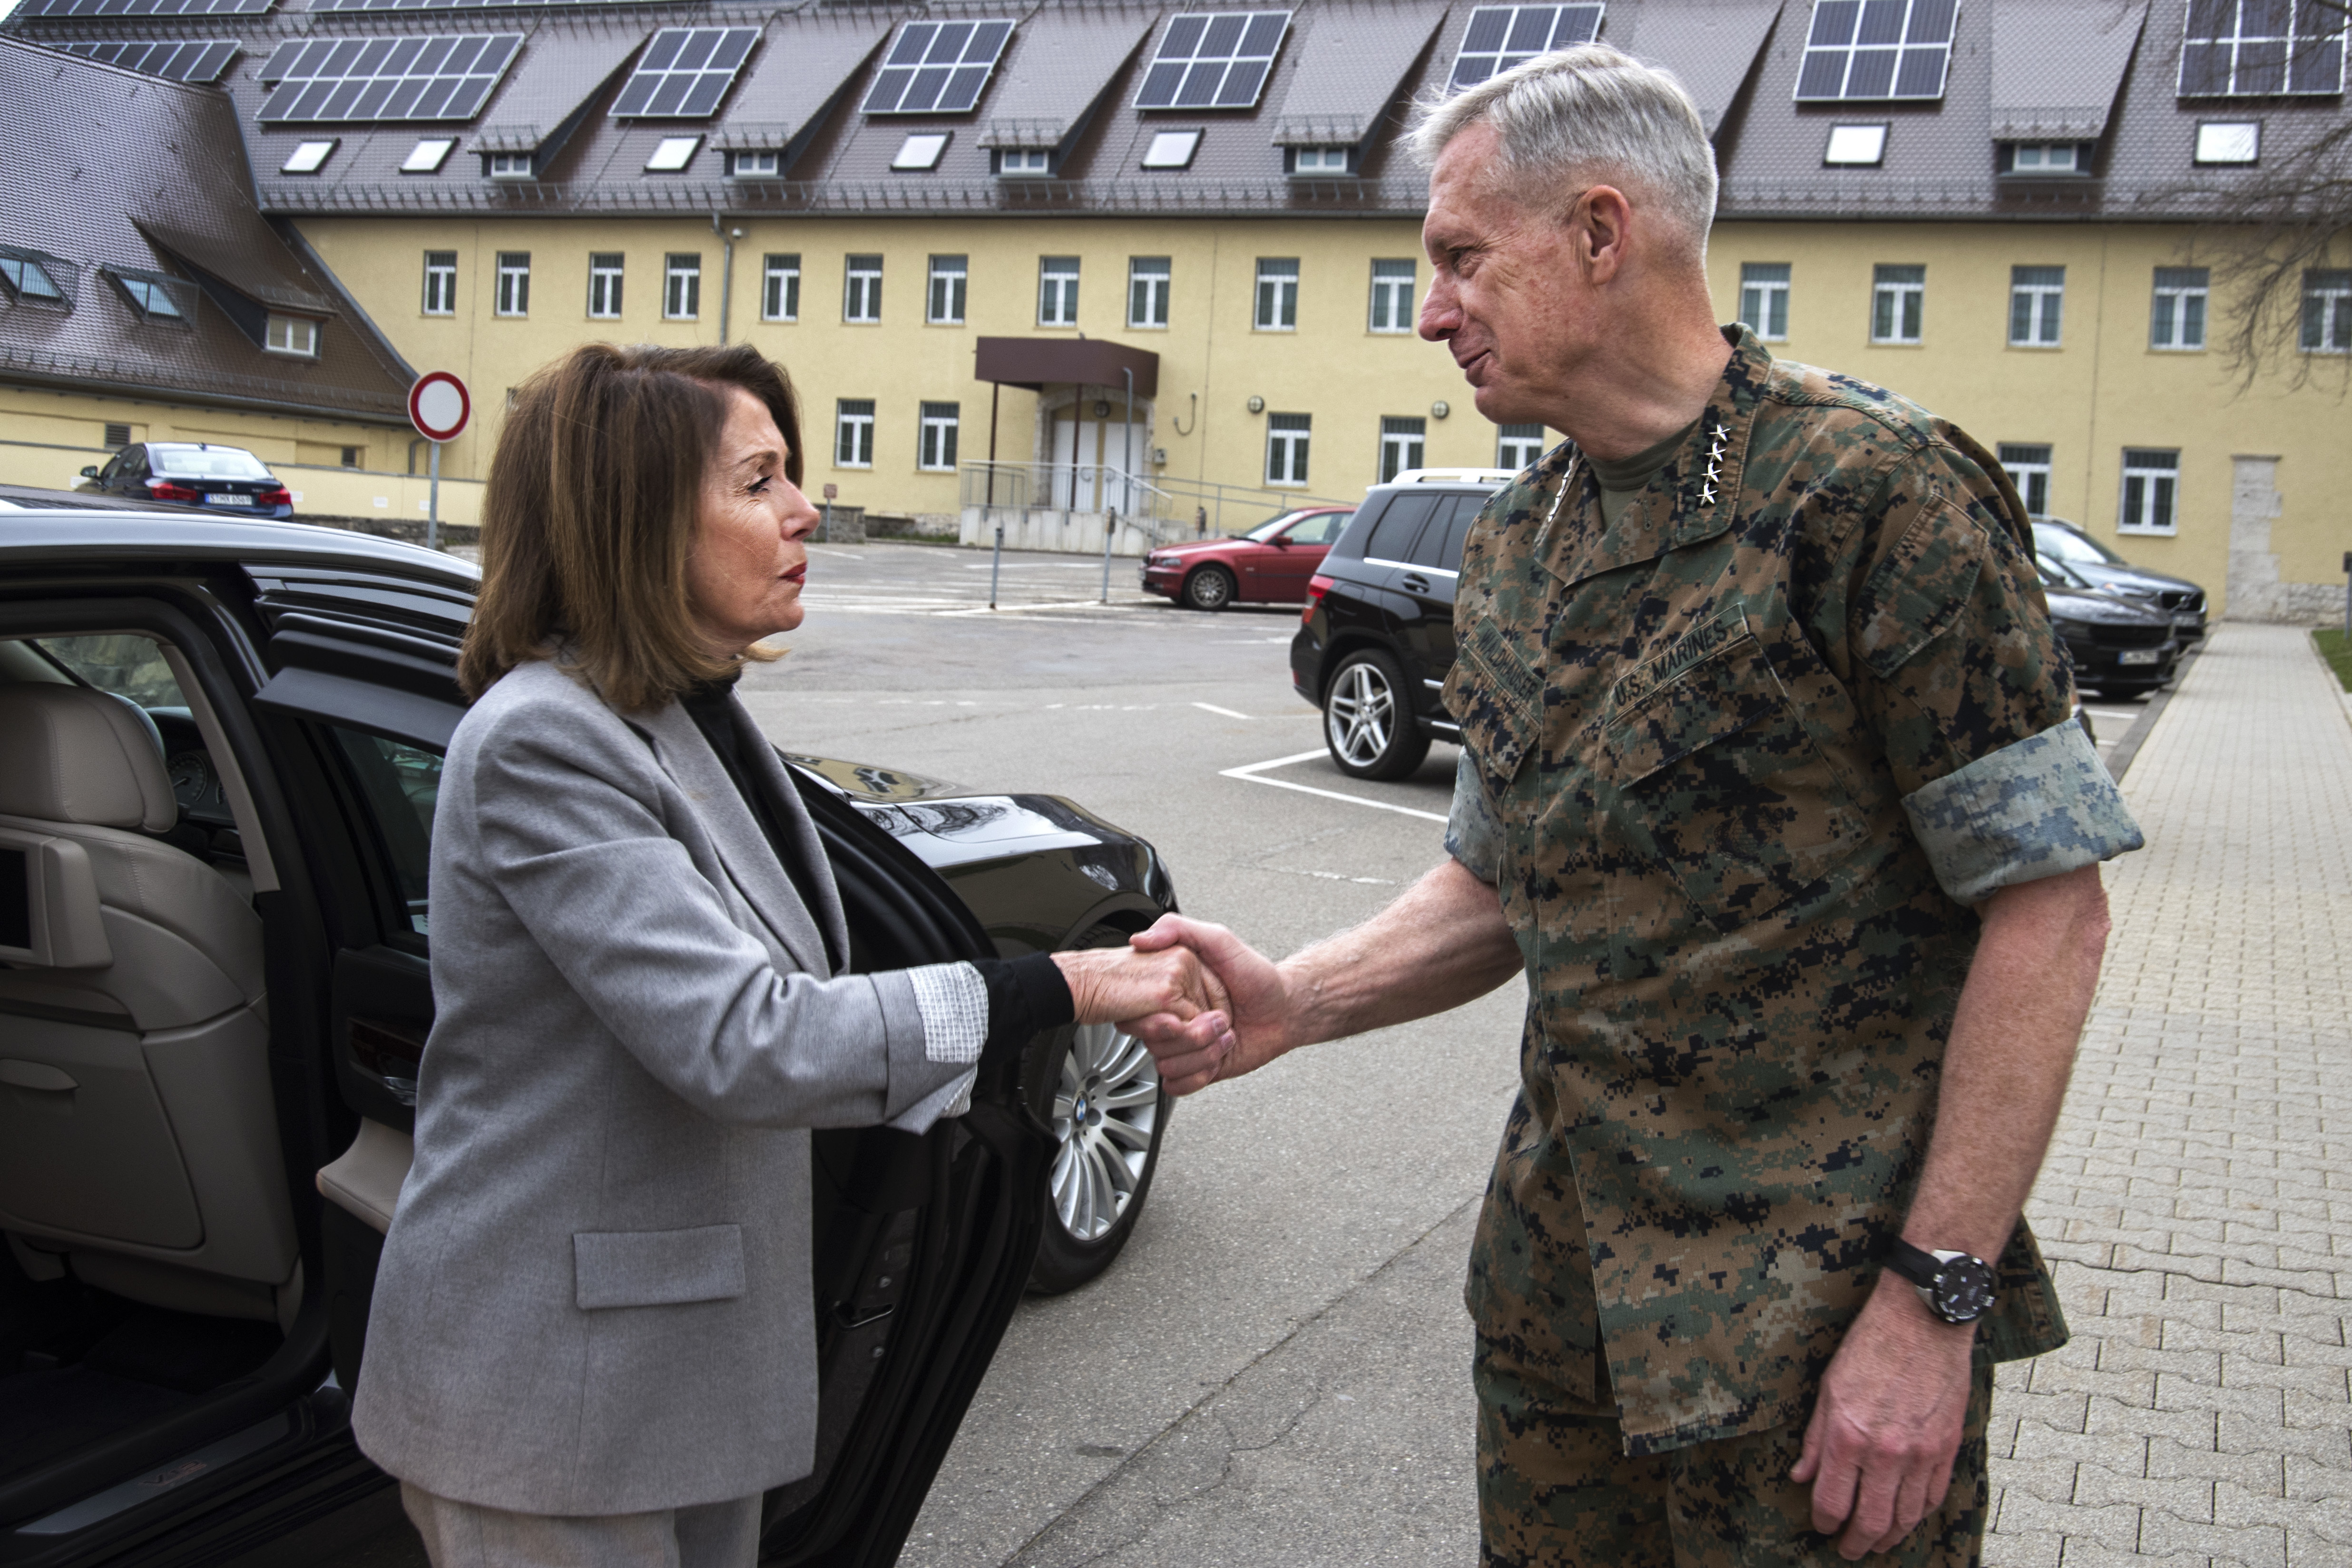 Marine Corps Gen. Thomas Waldhauser, commander, U.S. Africa Command, greets Speaker of the House Nancy Pelosi during a visit April 13, 2019 in Stuttgart, Germany. Pelosi along with a congressional delegation visited AFRICOM to gain insight about the command's operations and activities supporting the U.S. strategy for Africa. (U.S. Navy photo by Mass Communication Specialist 1st Class Christopher Hurd/Released)